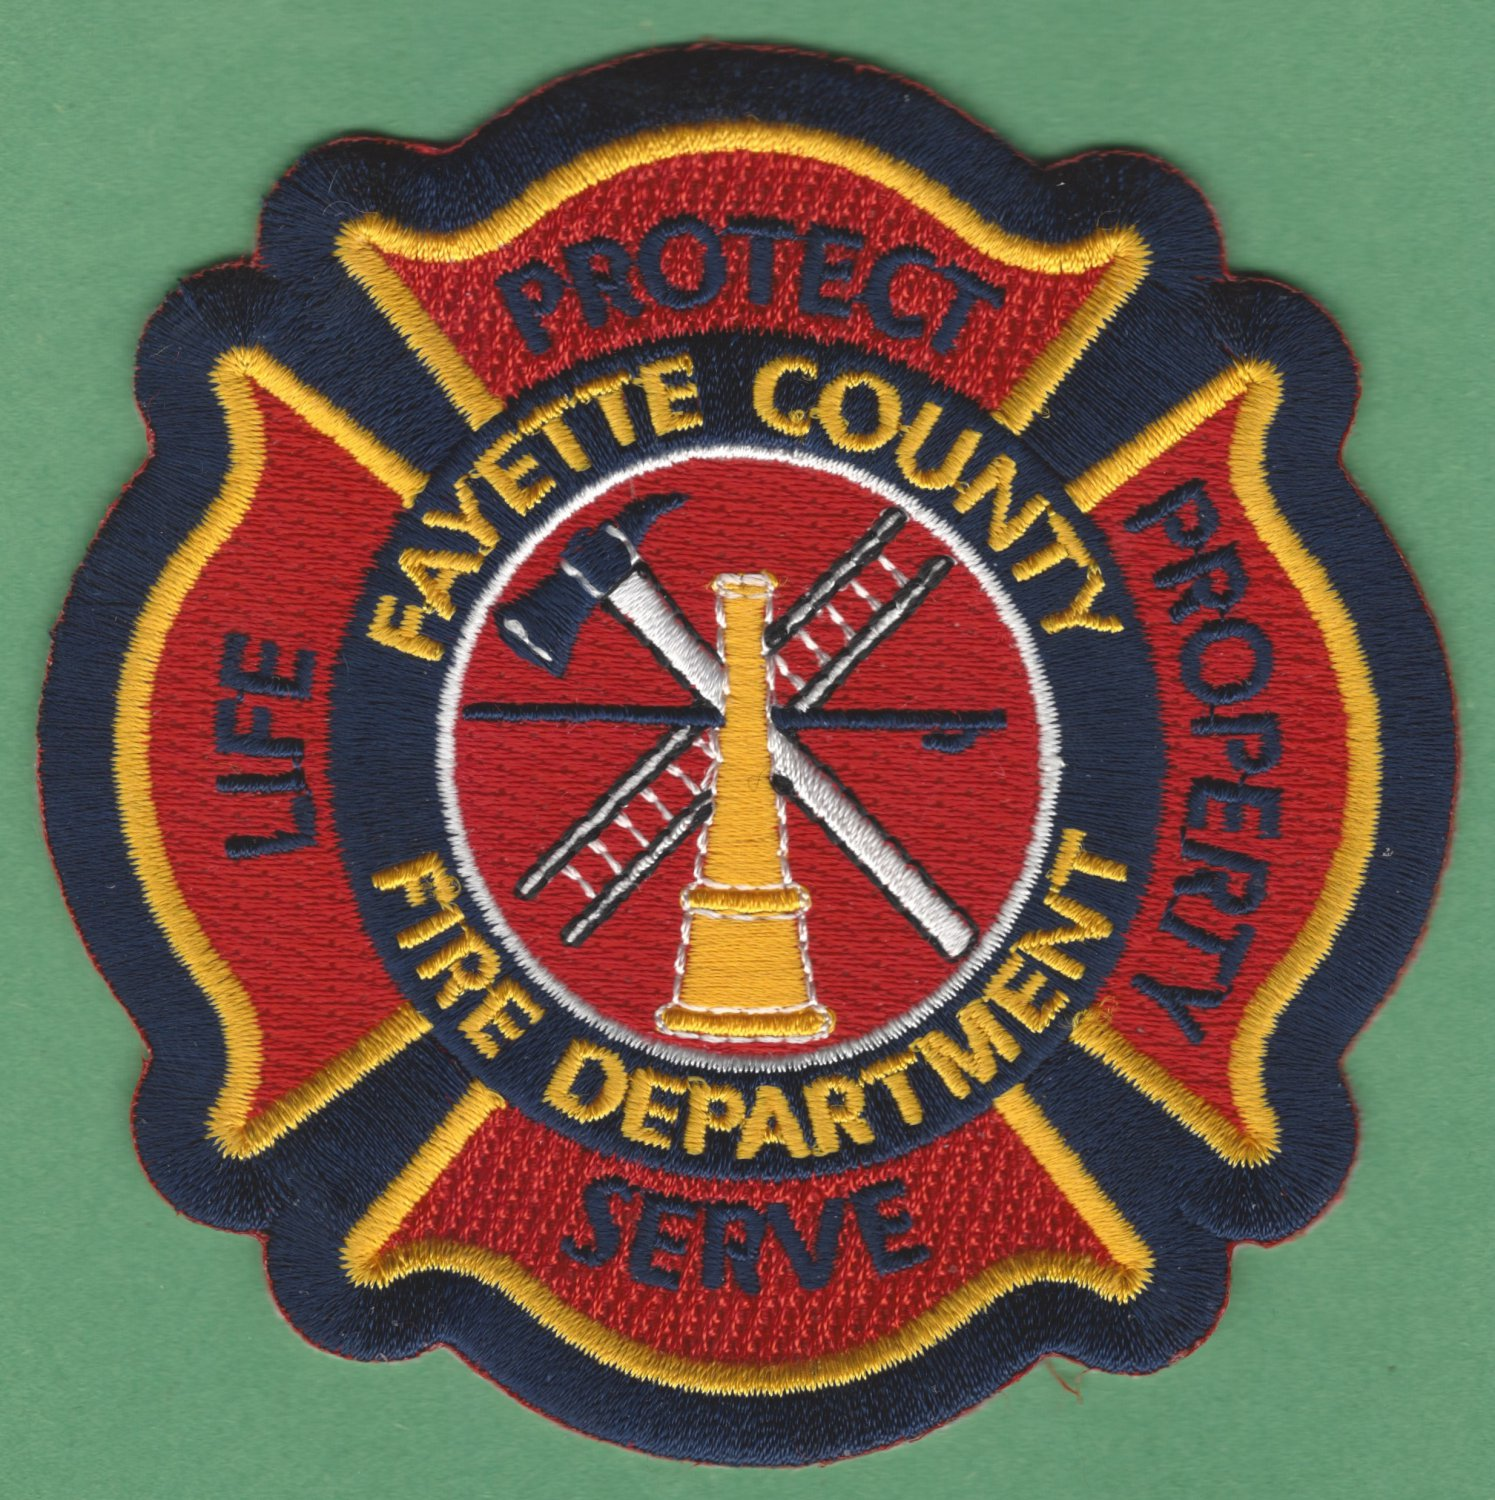 FAYETTE COUNTY TENNESSEE FIRE RESCUE PATCH